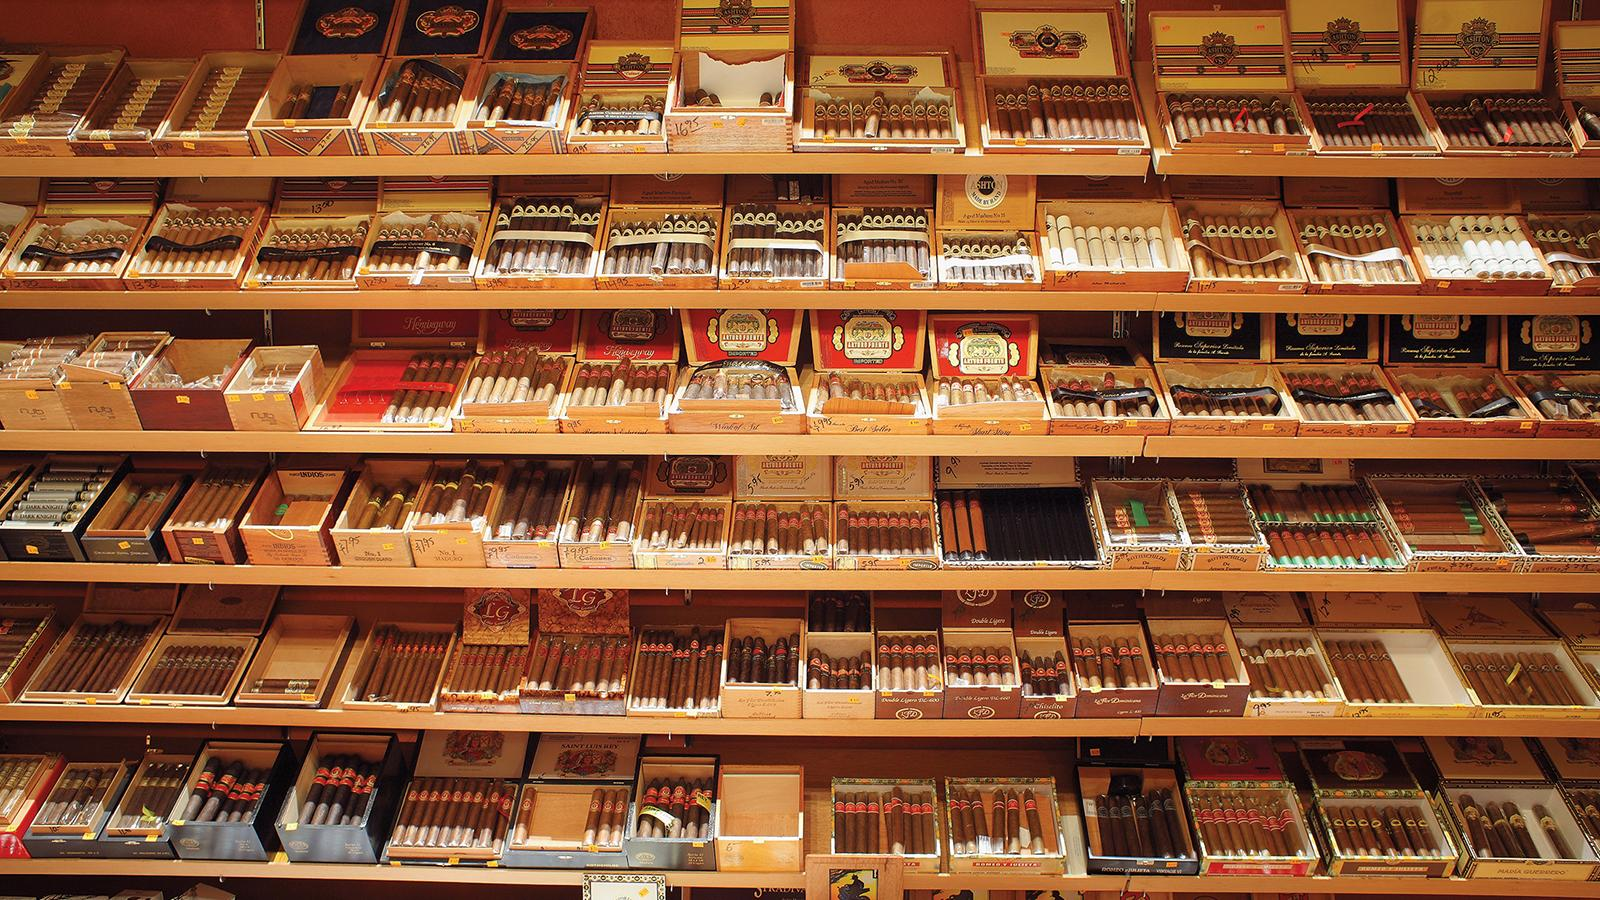 Handmade Cigar Imports Slow; Dominican and Nicaraguan Shipments Rise